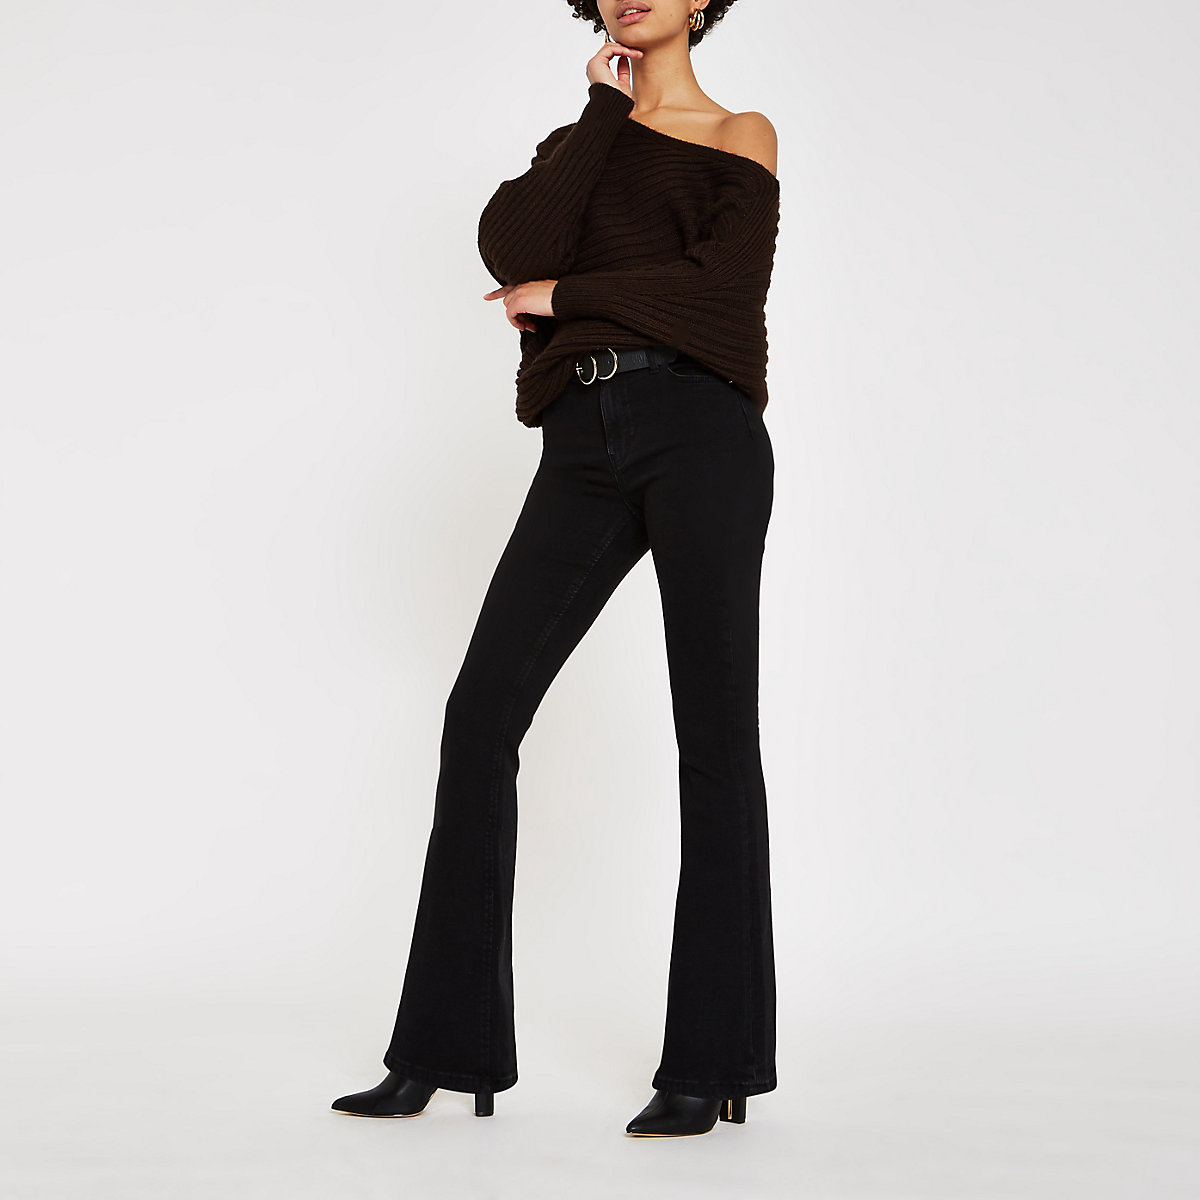 Black high rise flared jeans